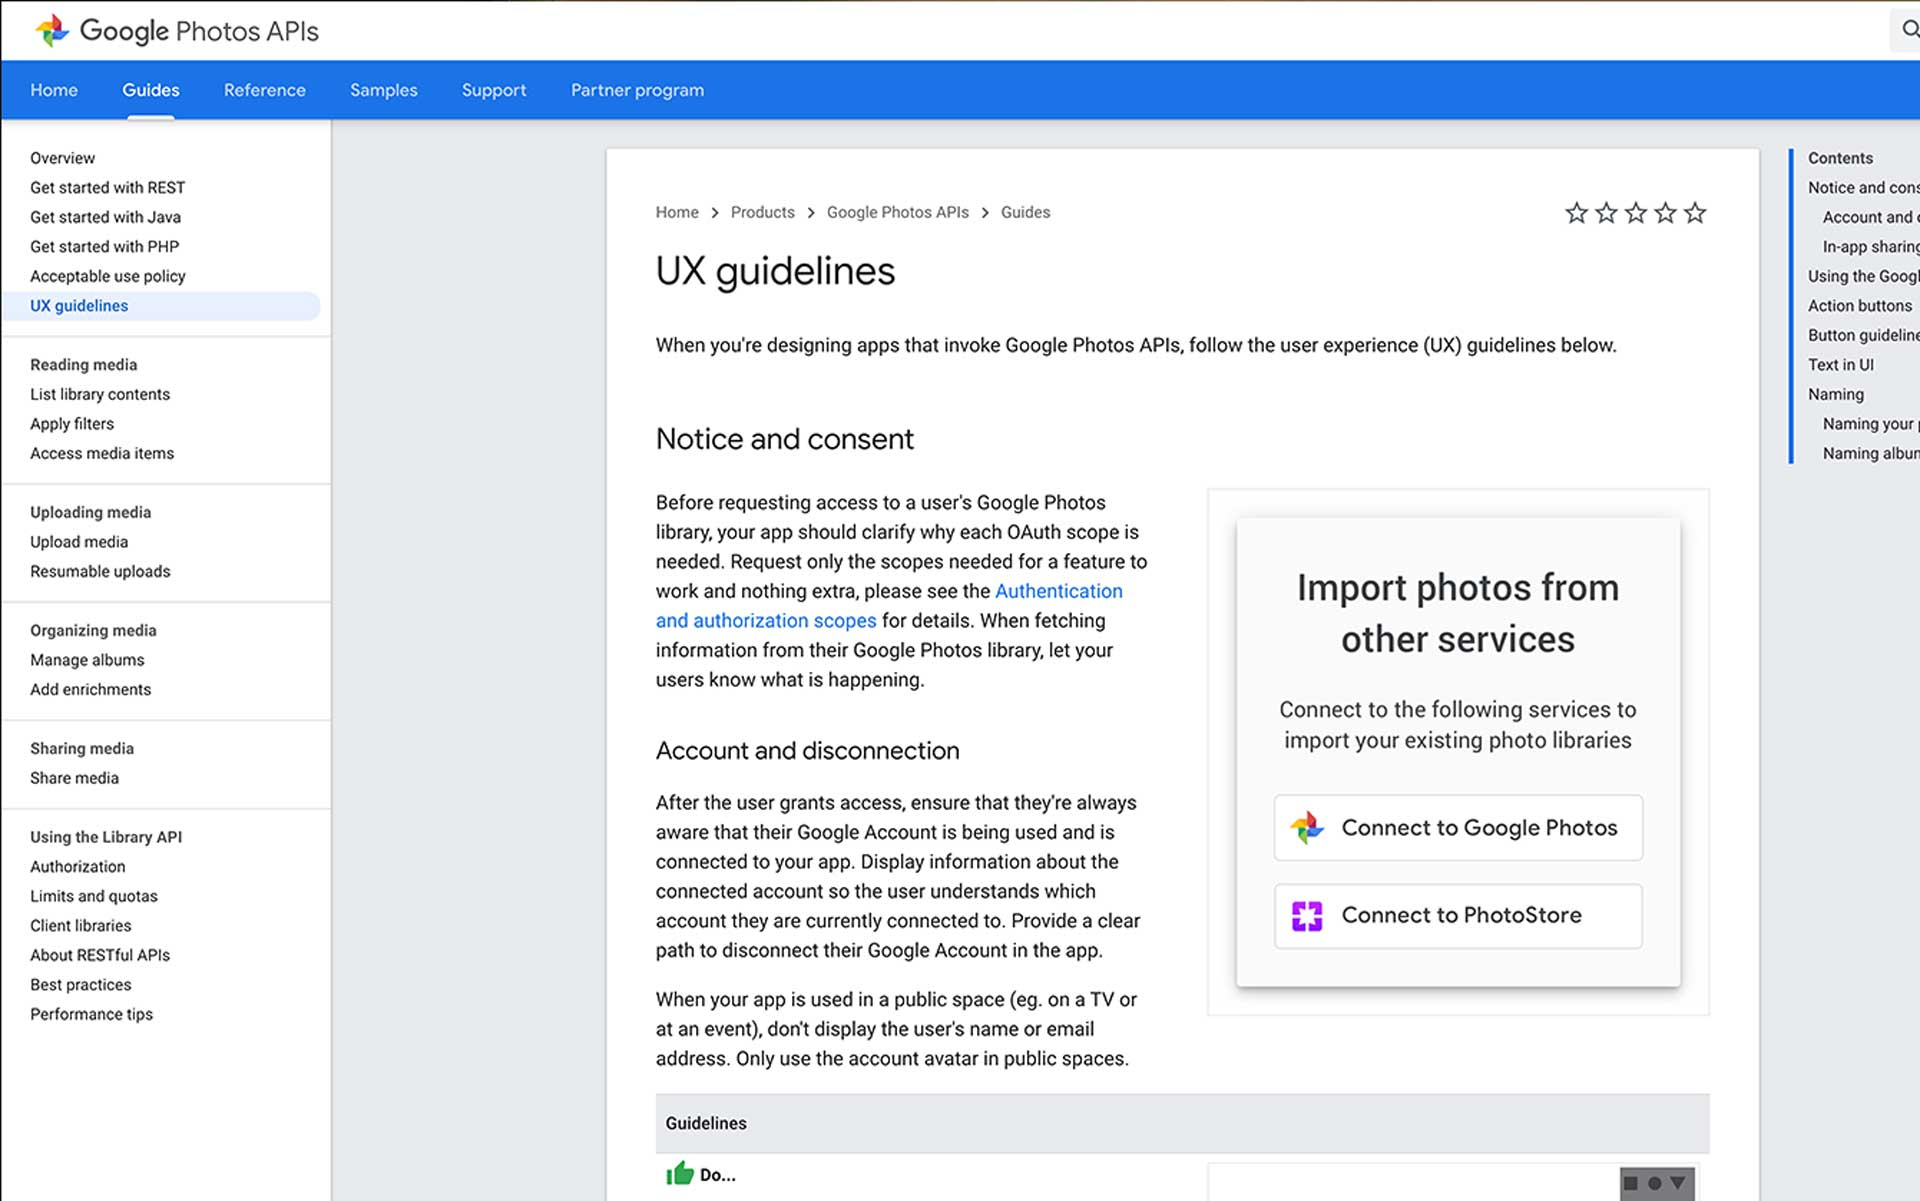 Screenshot from the public Google Photos Library APIs UX guidelines page